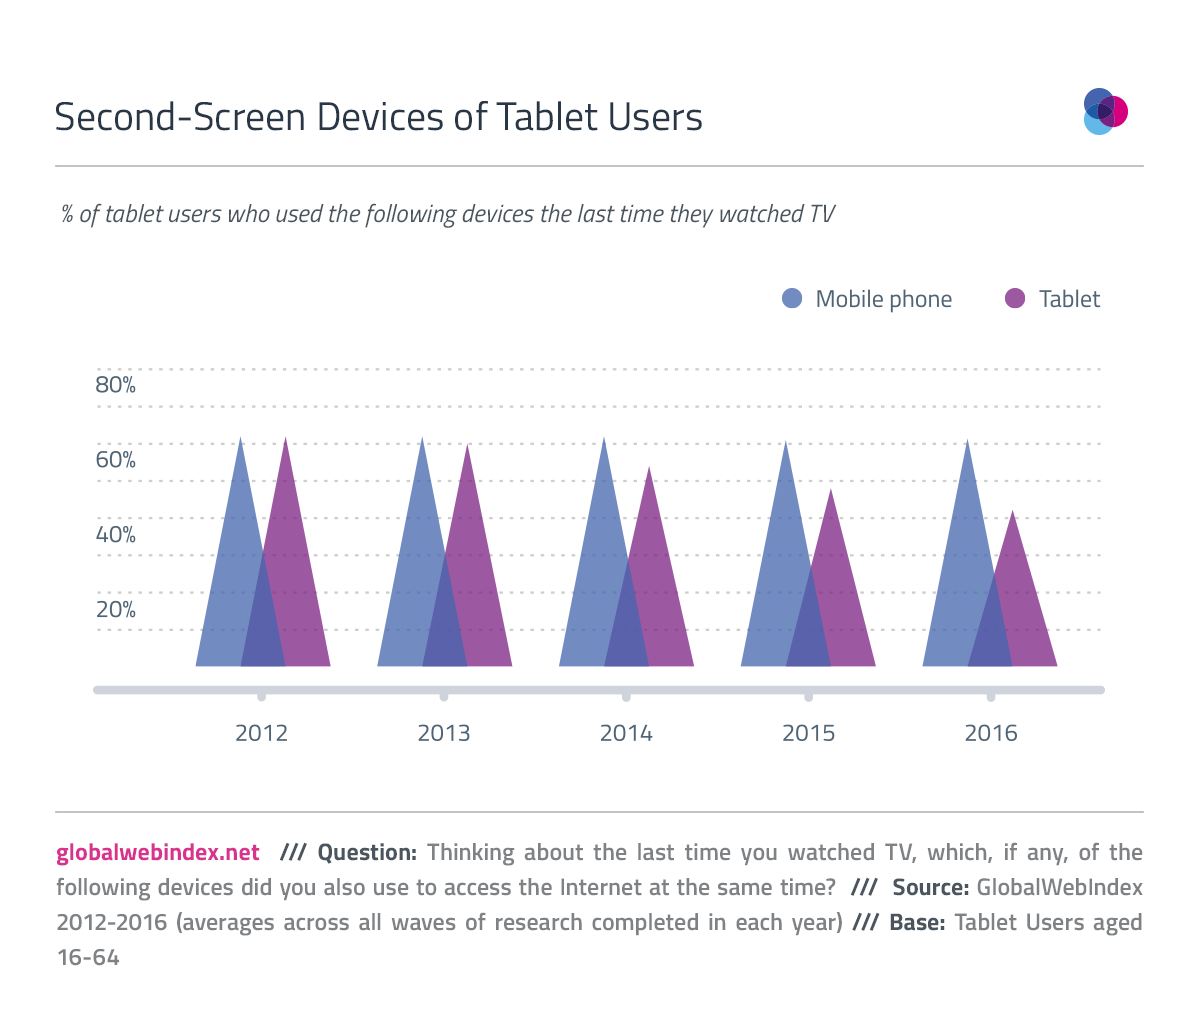 Tablet declining as second-screening device